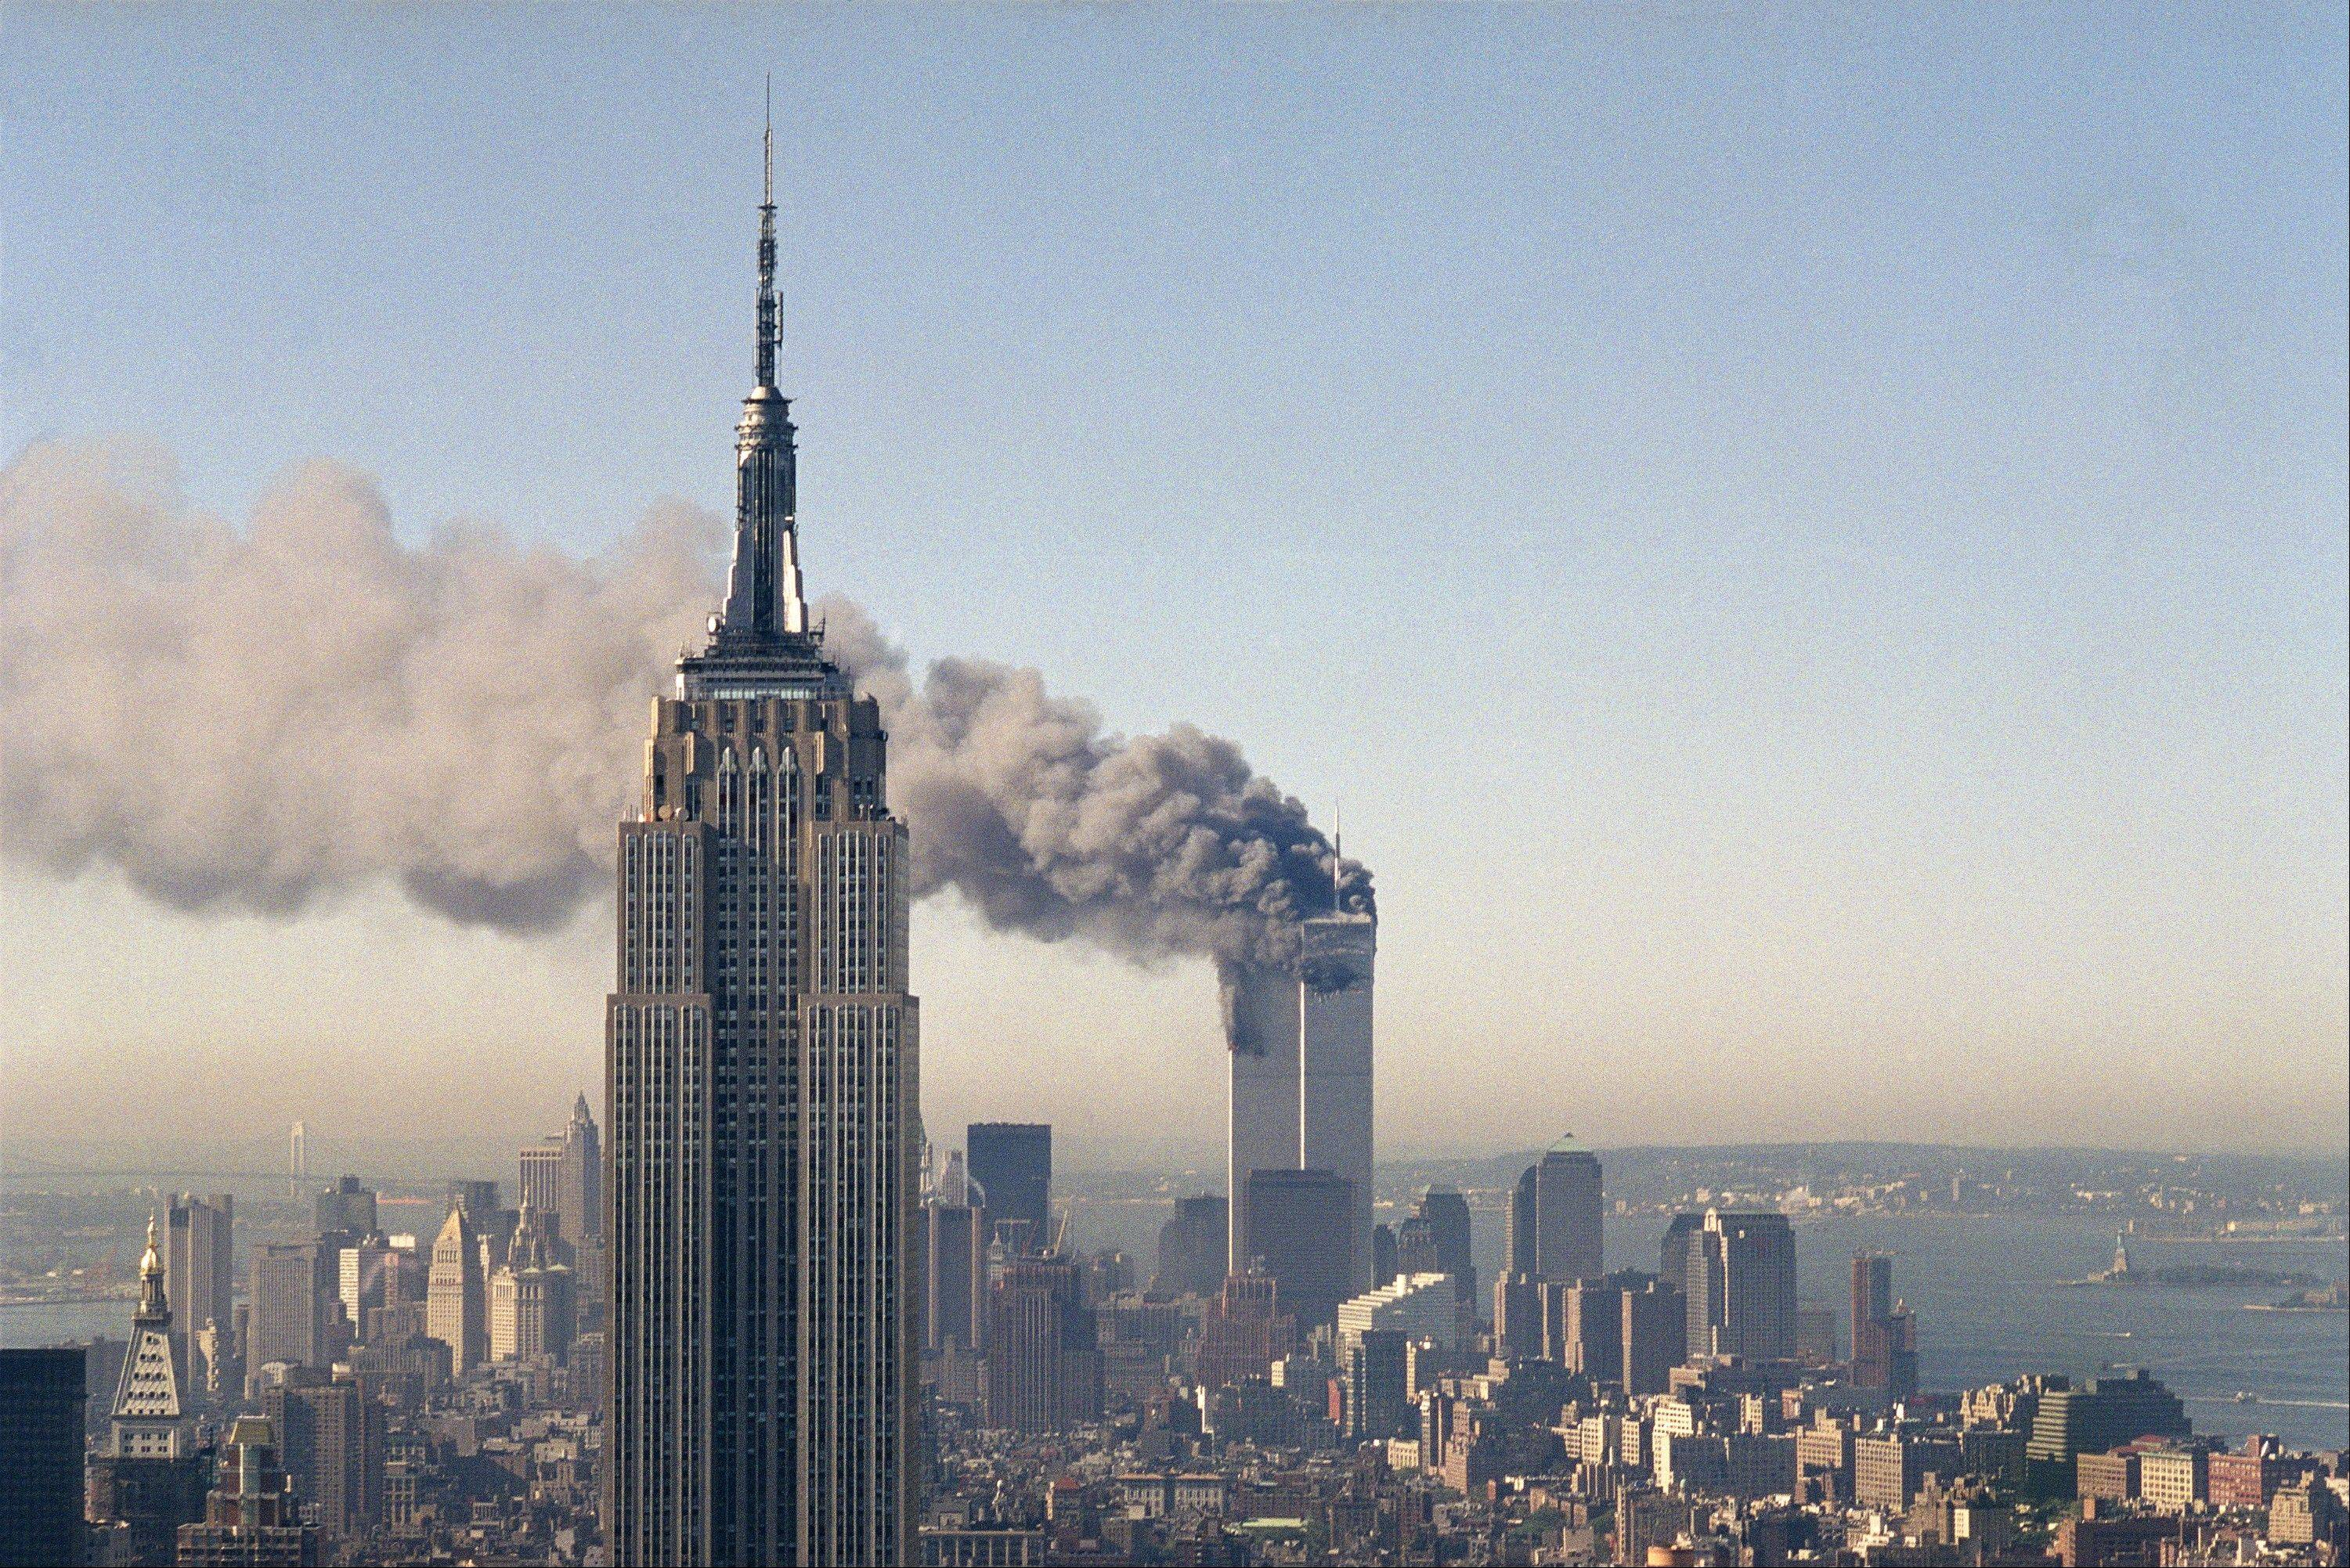 The twin towers of the World Trade Center burn behind the Empire State Building in New York. The Sept. 11, 2001 terrorist attack is by far the most memorable moment shared by television viewers during the past 50 years, according to a new study.